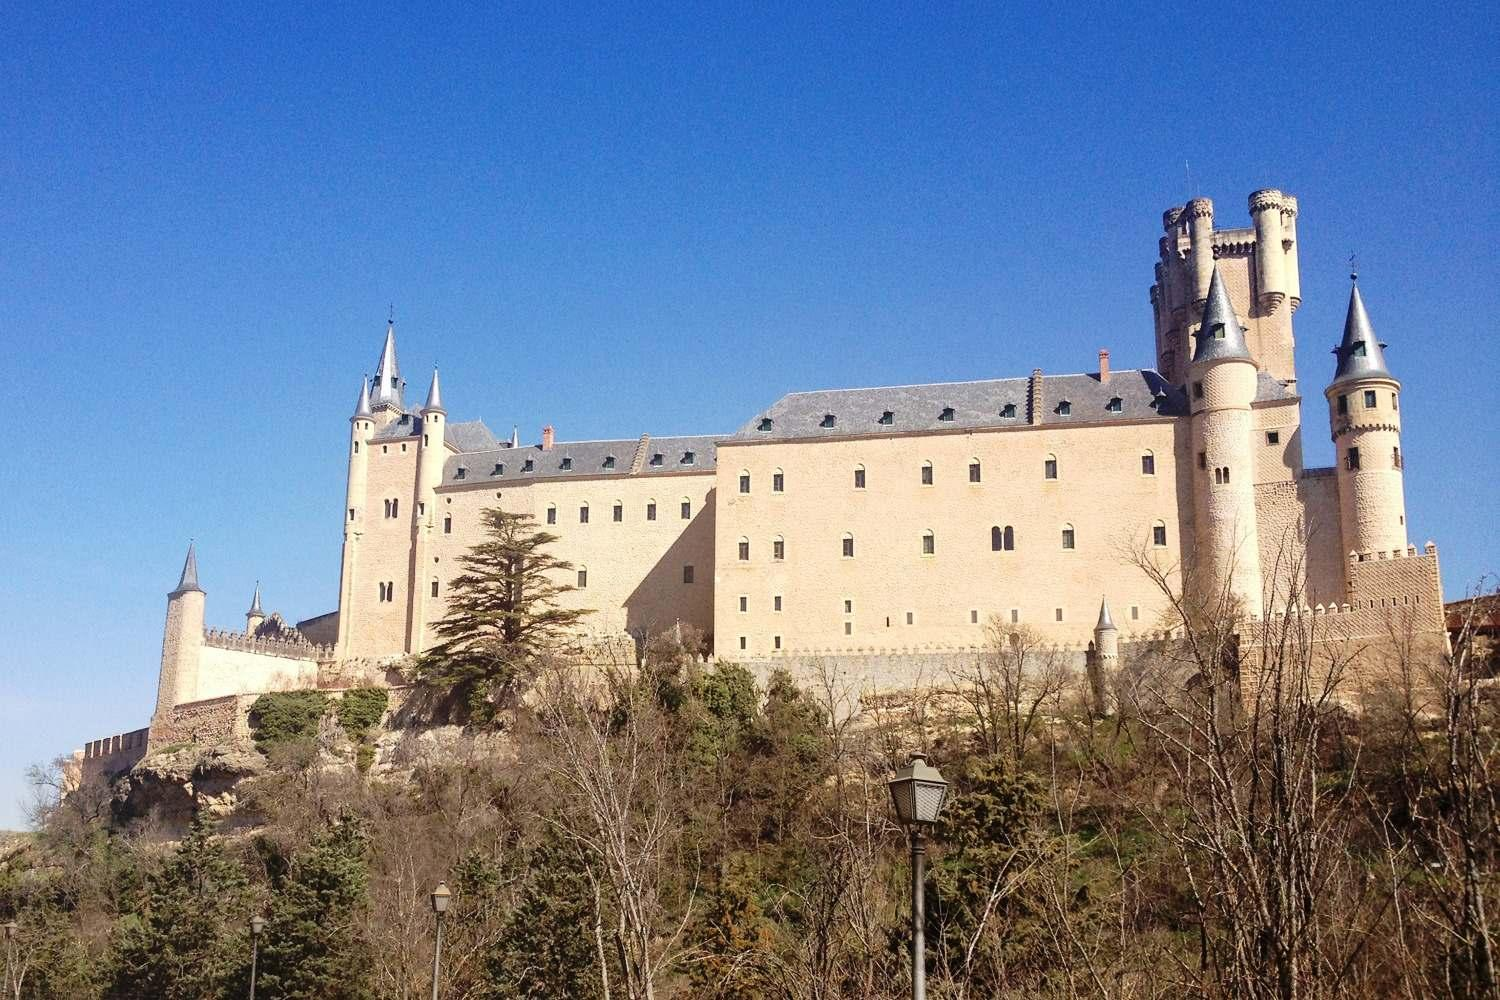 Trip to Segovia from Madrid